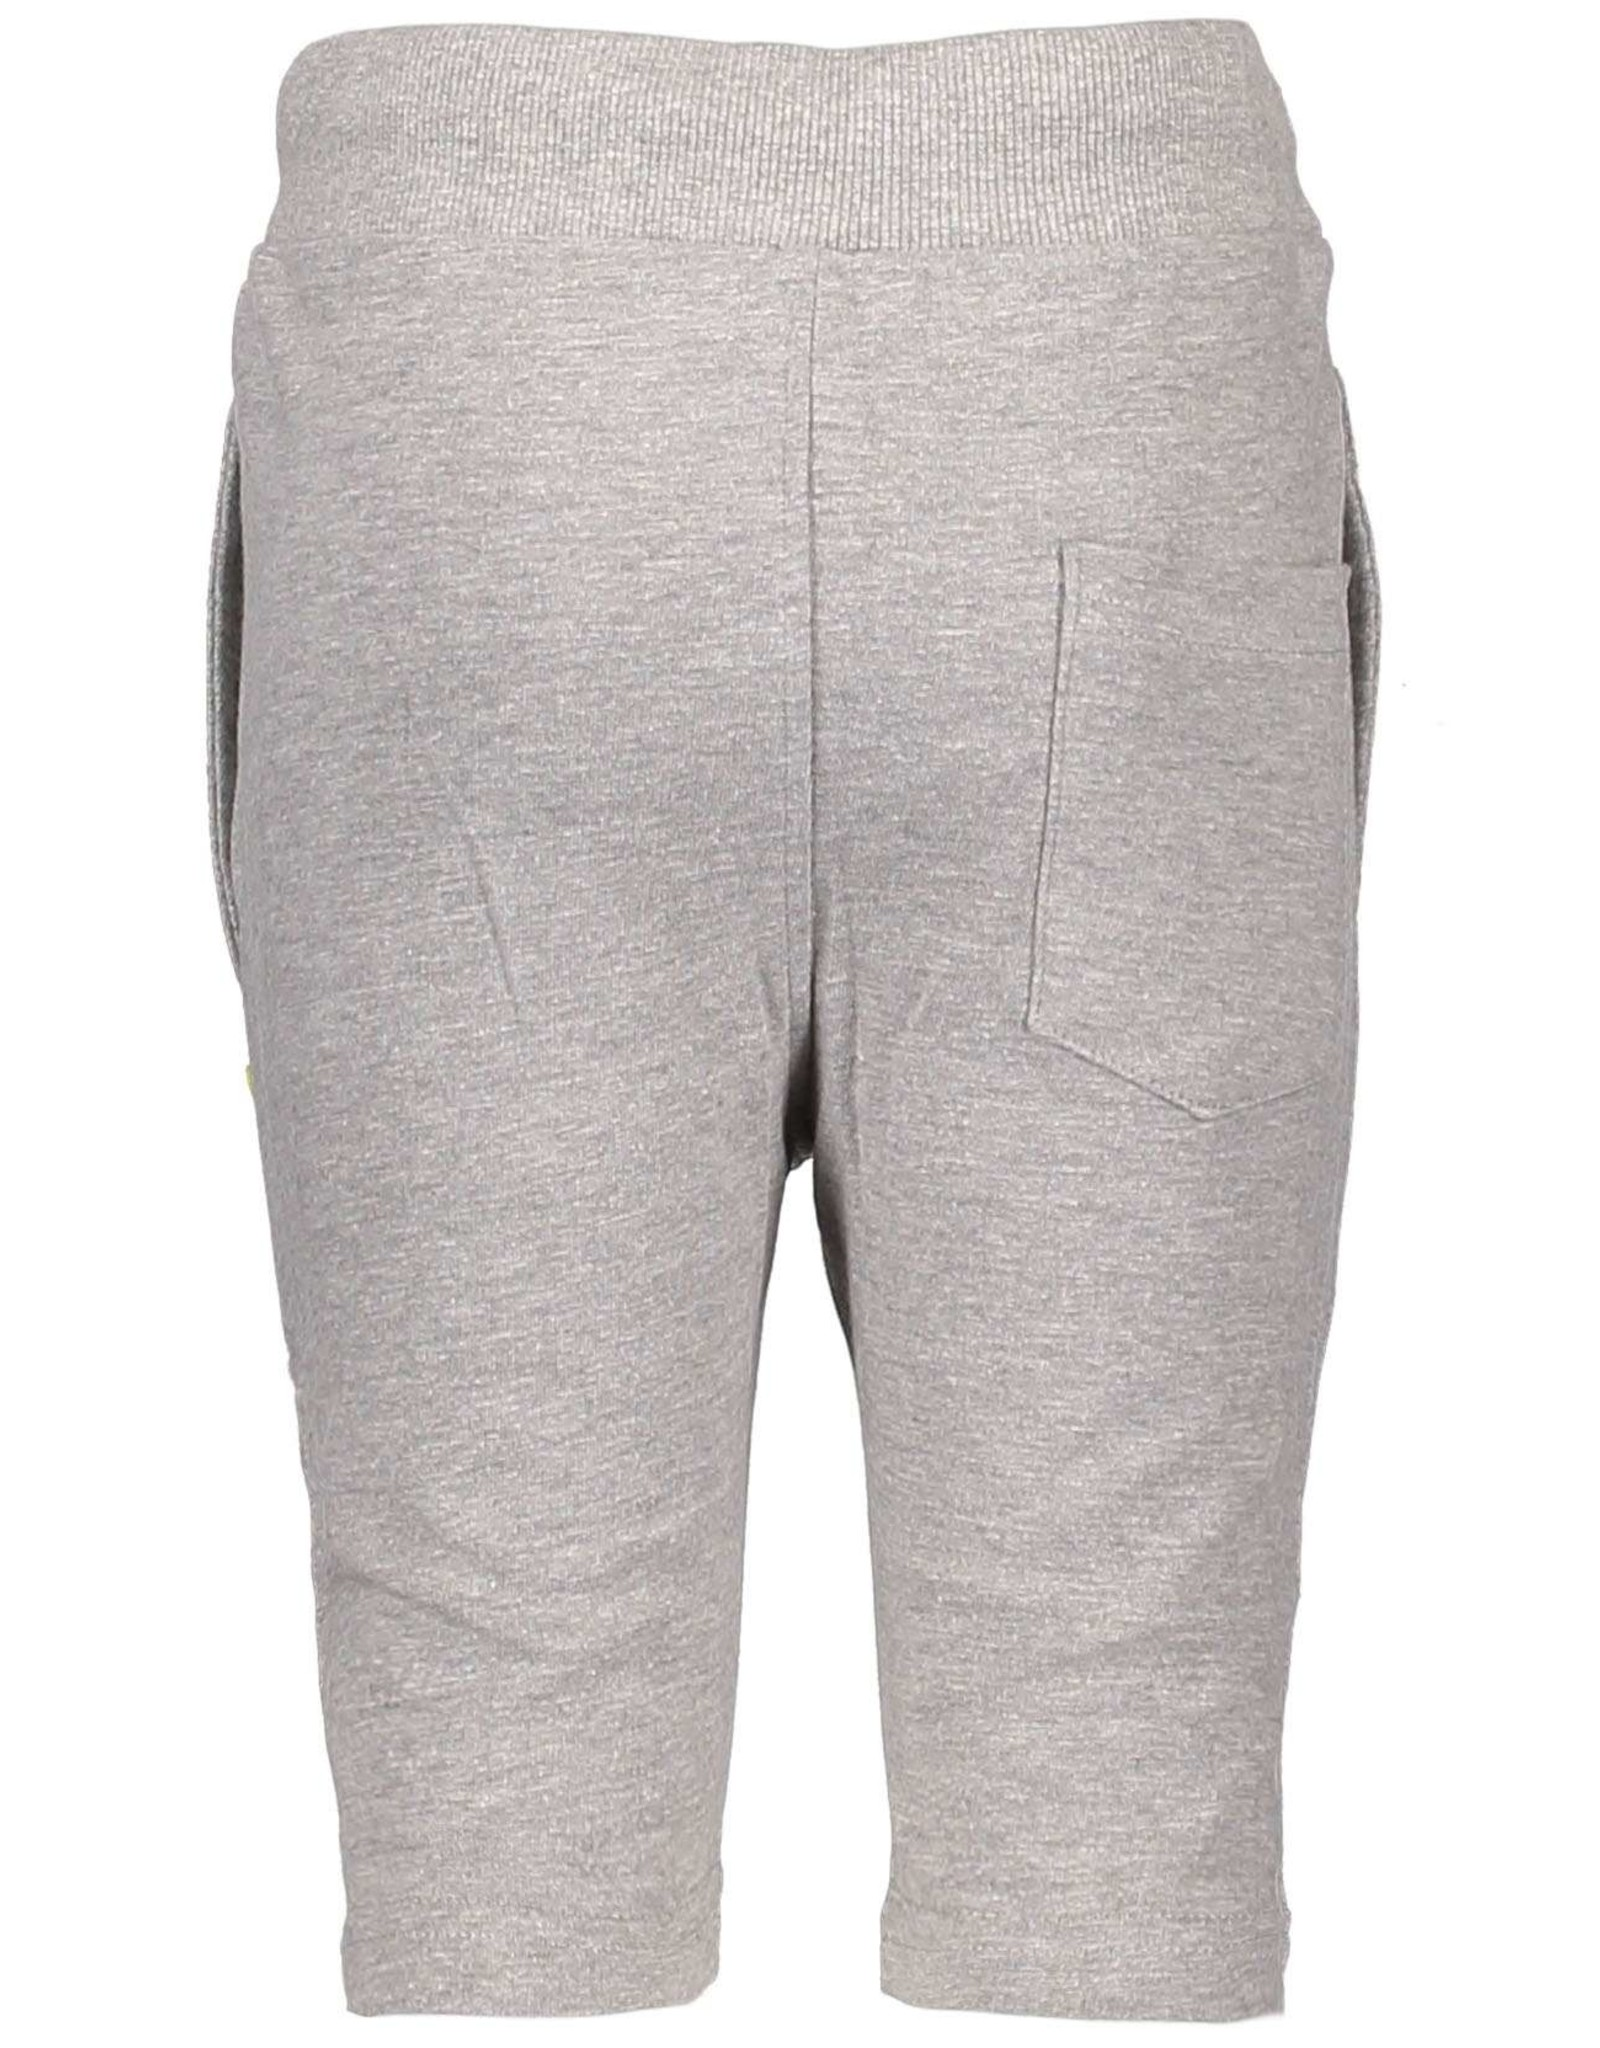 Moodstreet Fellow Moodstreet Fellow Sweat Short Grey Melee